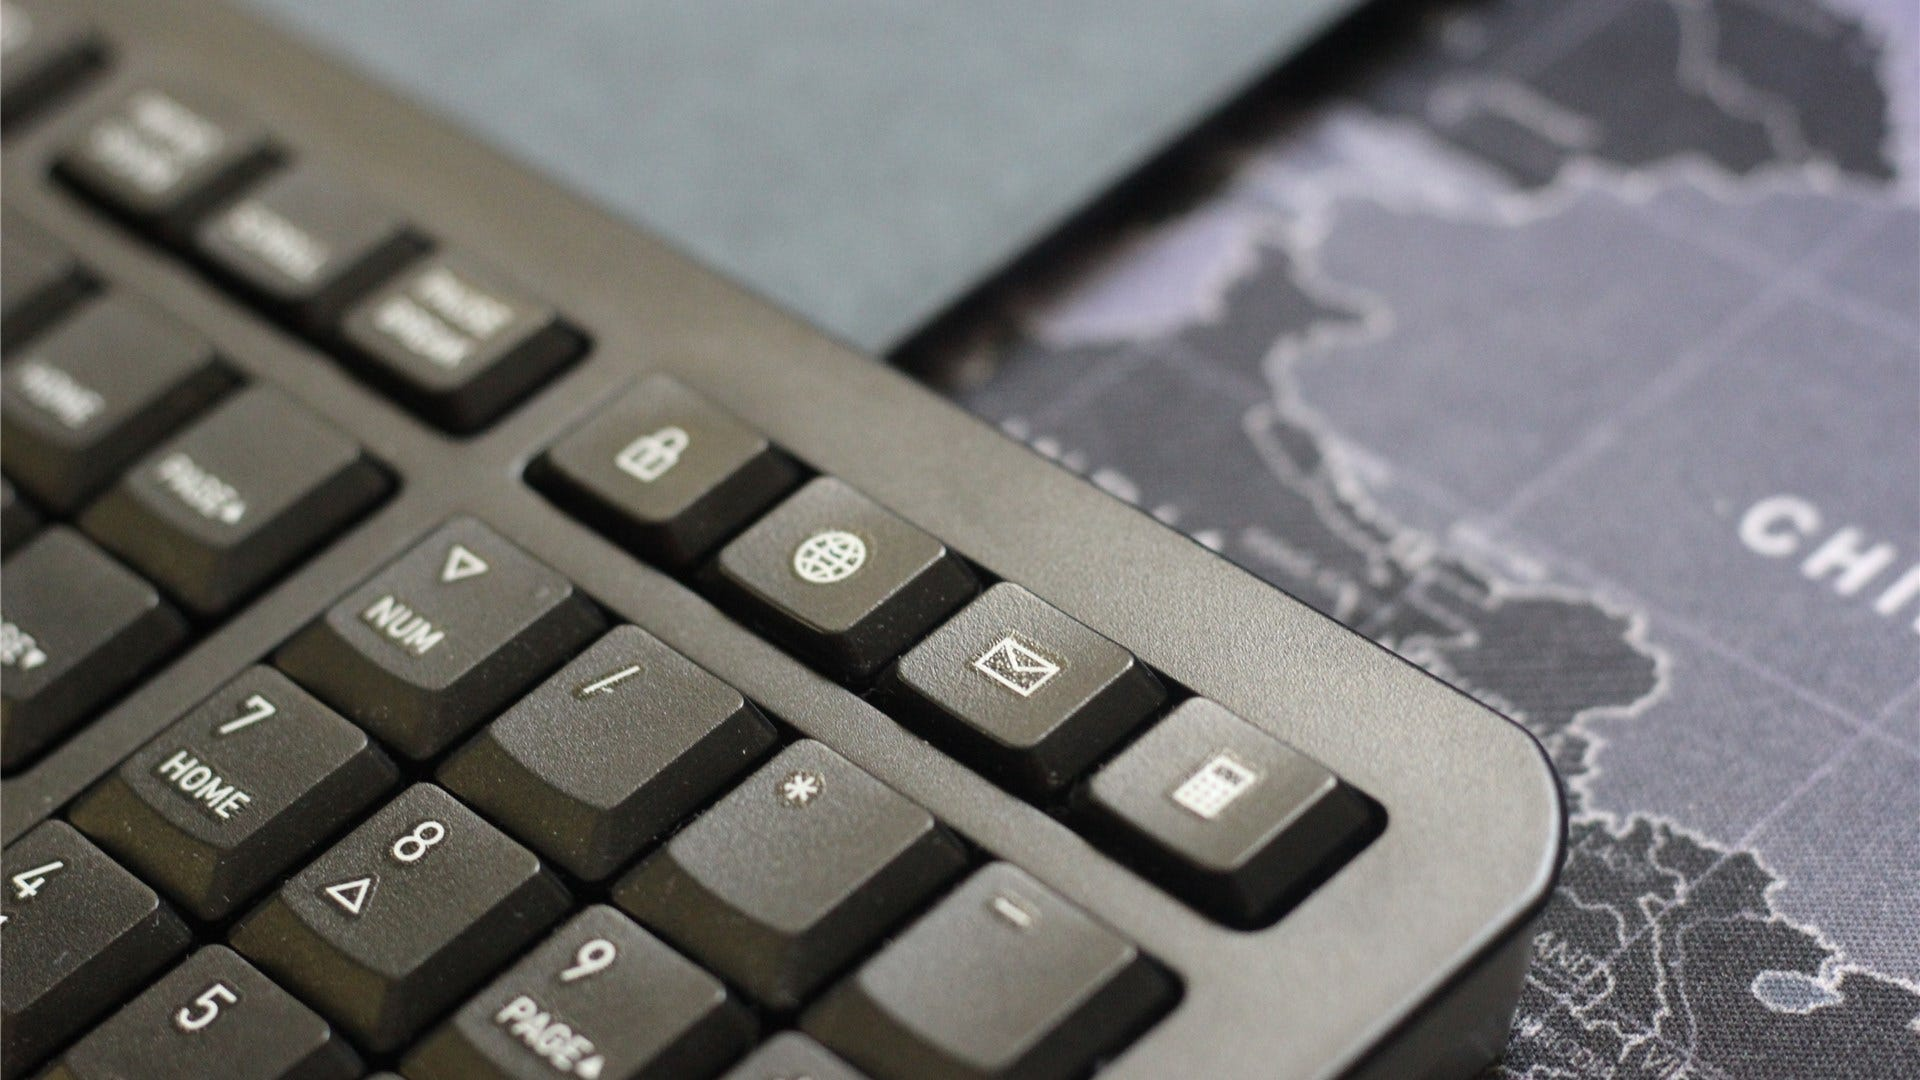 A close-up of the additional keys on the Gentix keyboard